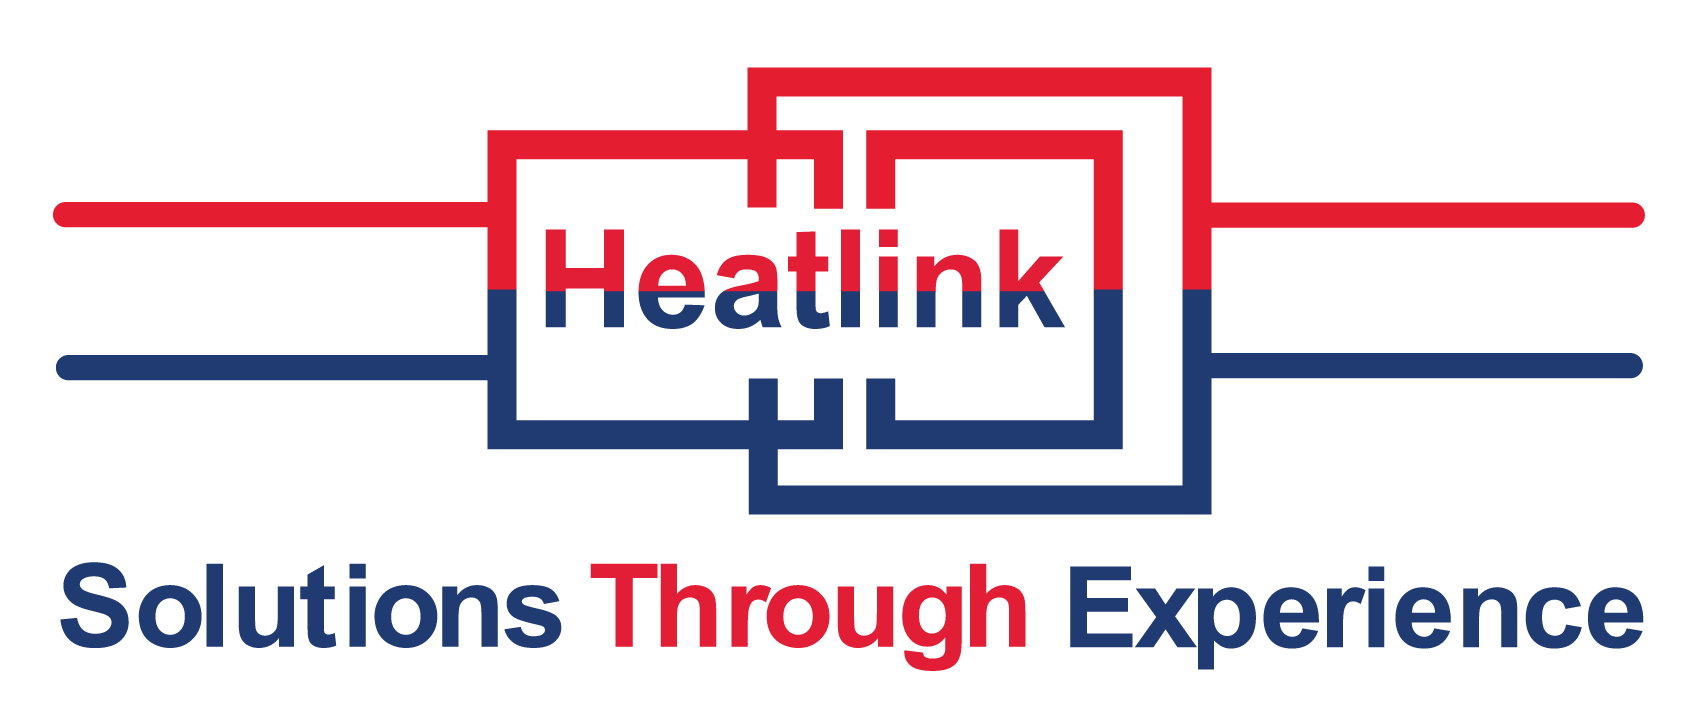 HEATLINK LOGO - About Us